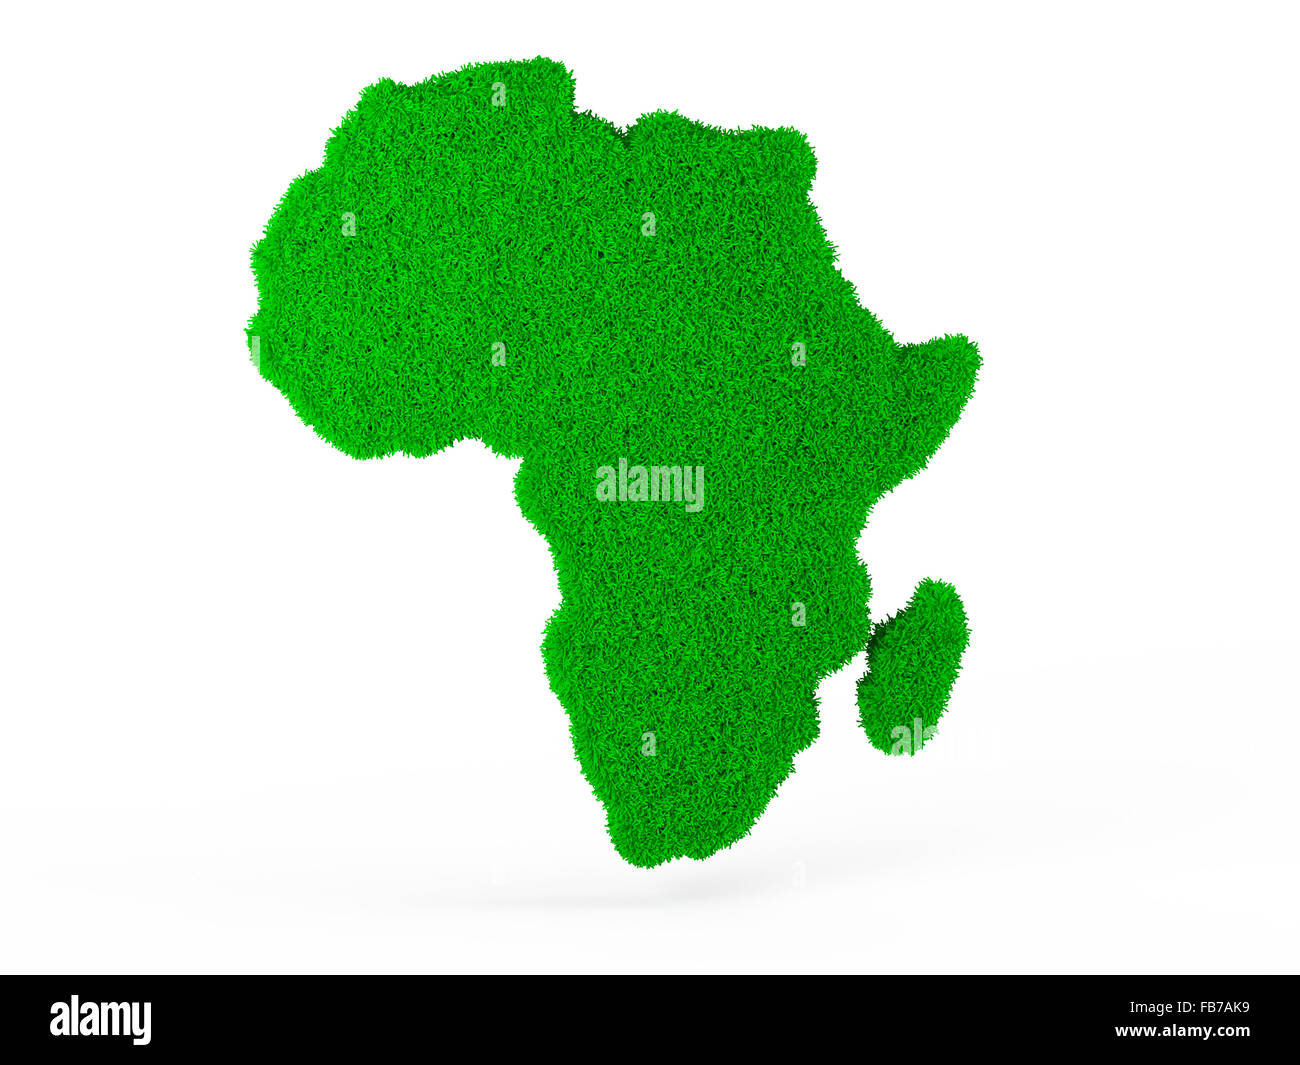 symbol 3d global environmental problems grass map of africa